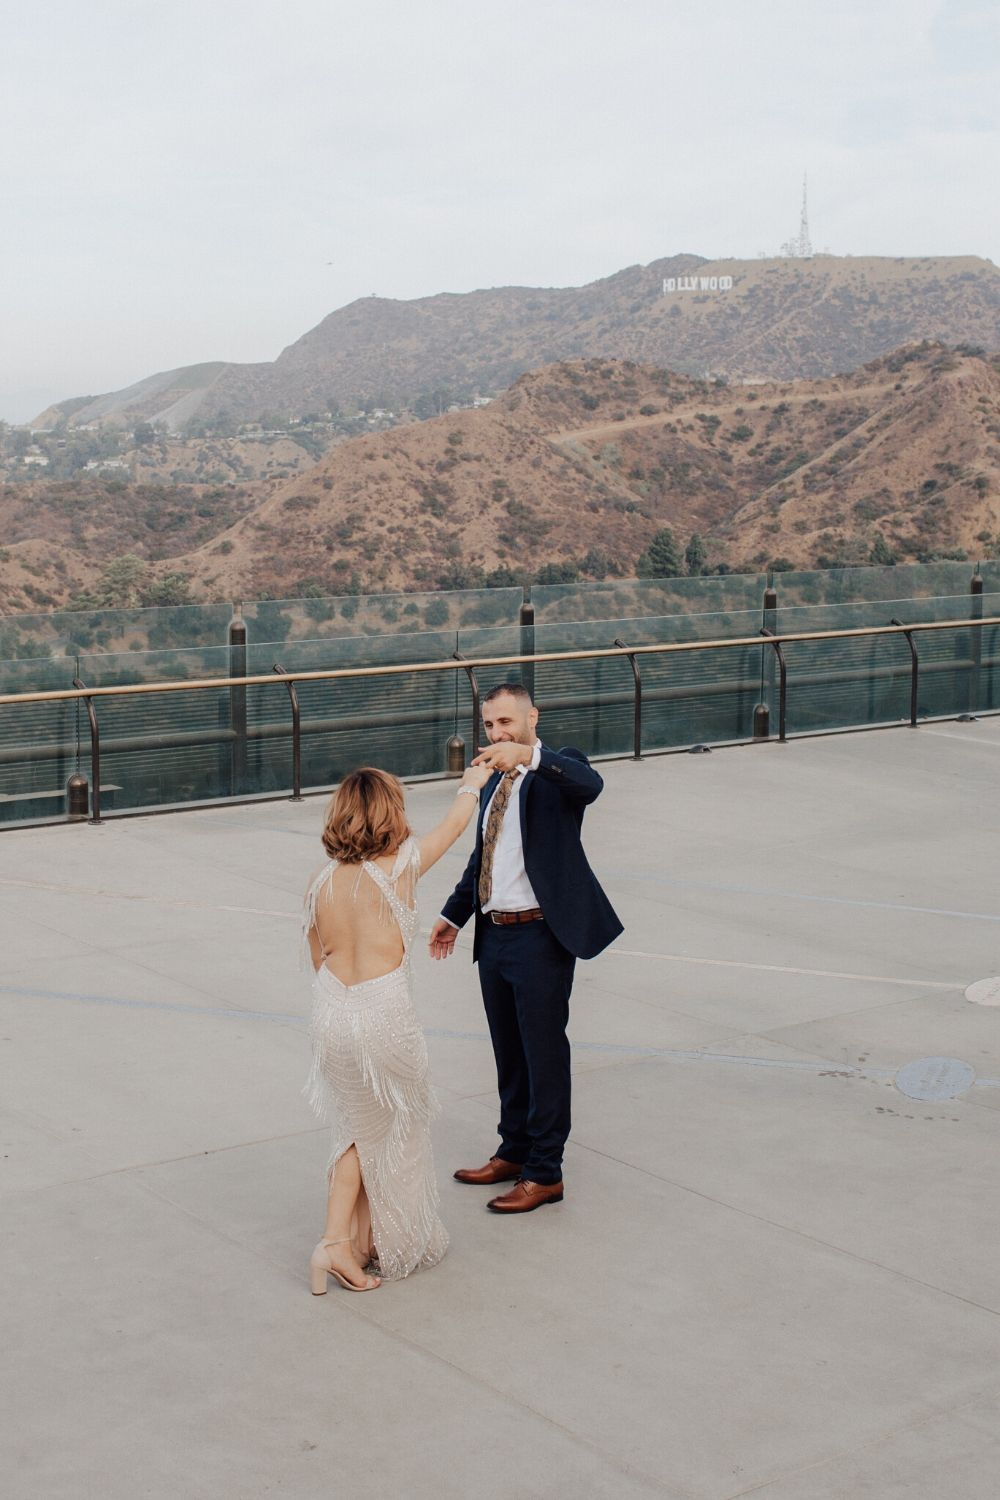 Southern California Photographer couples and engagement photo shoot ideas